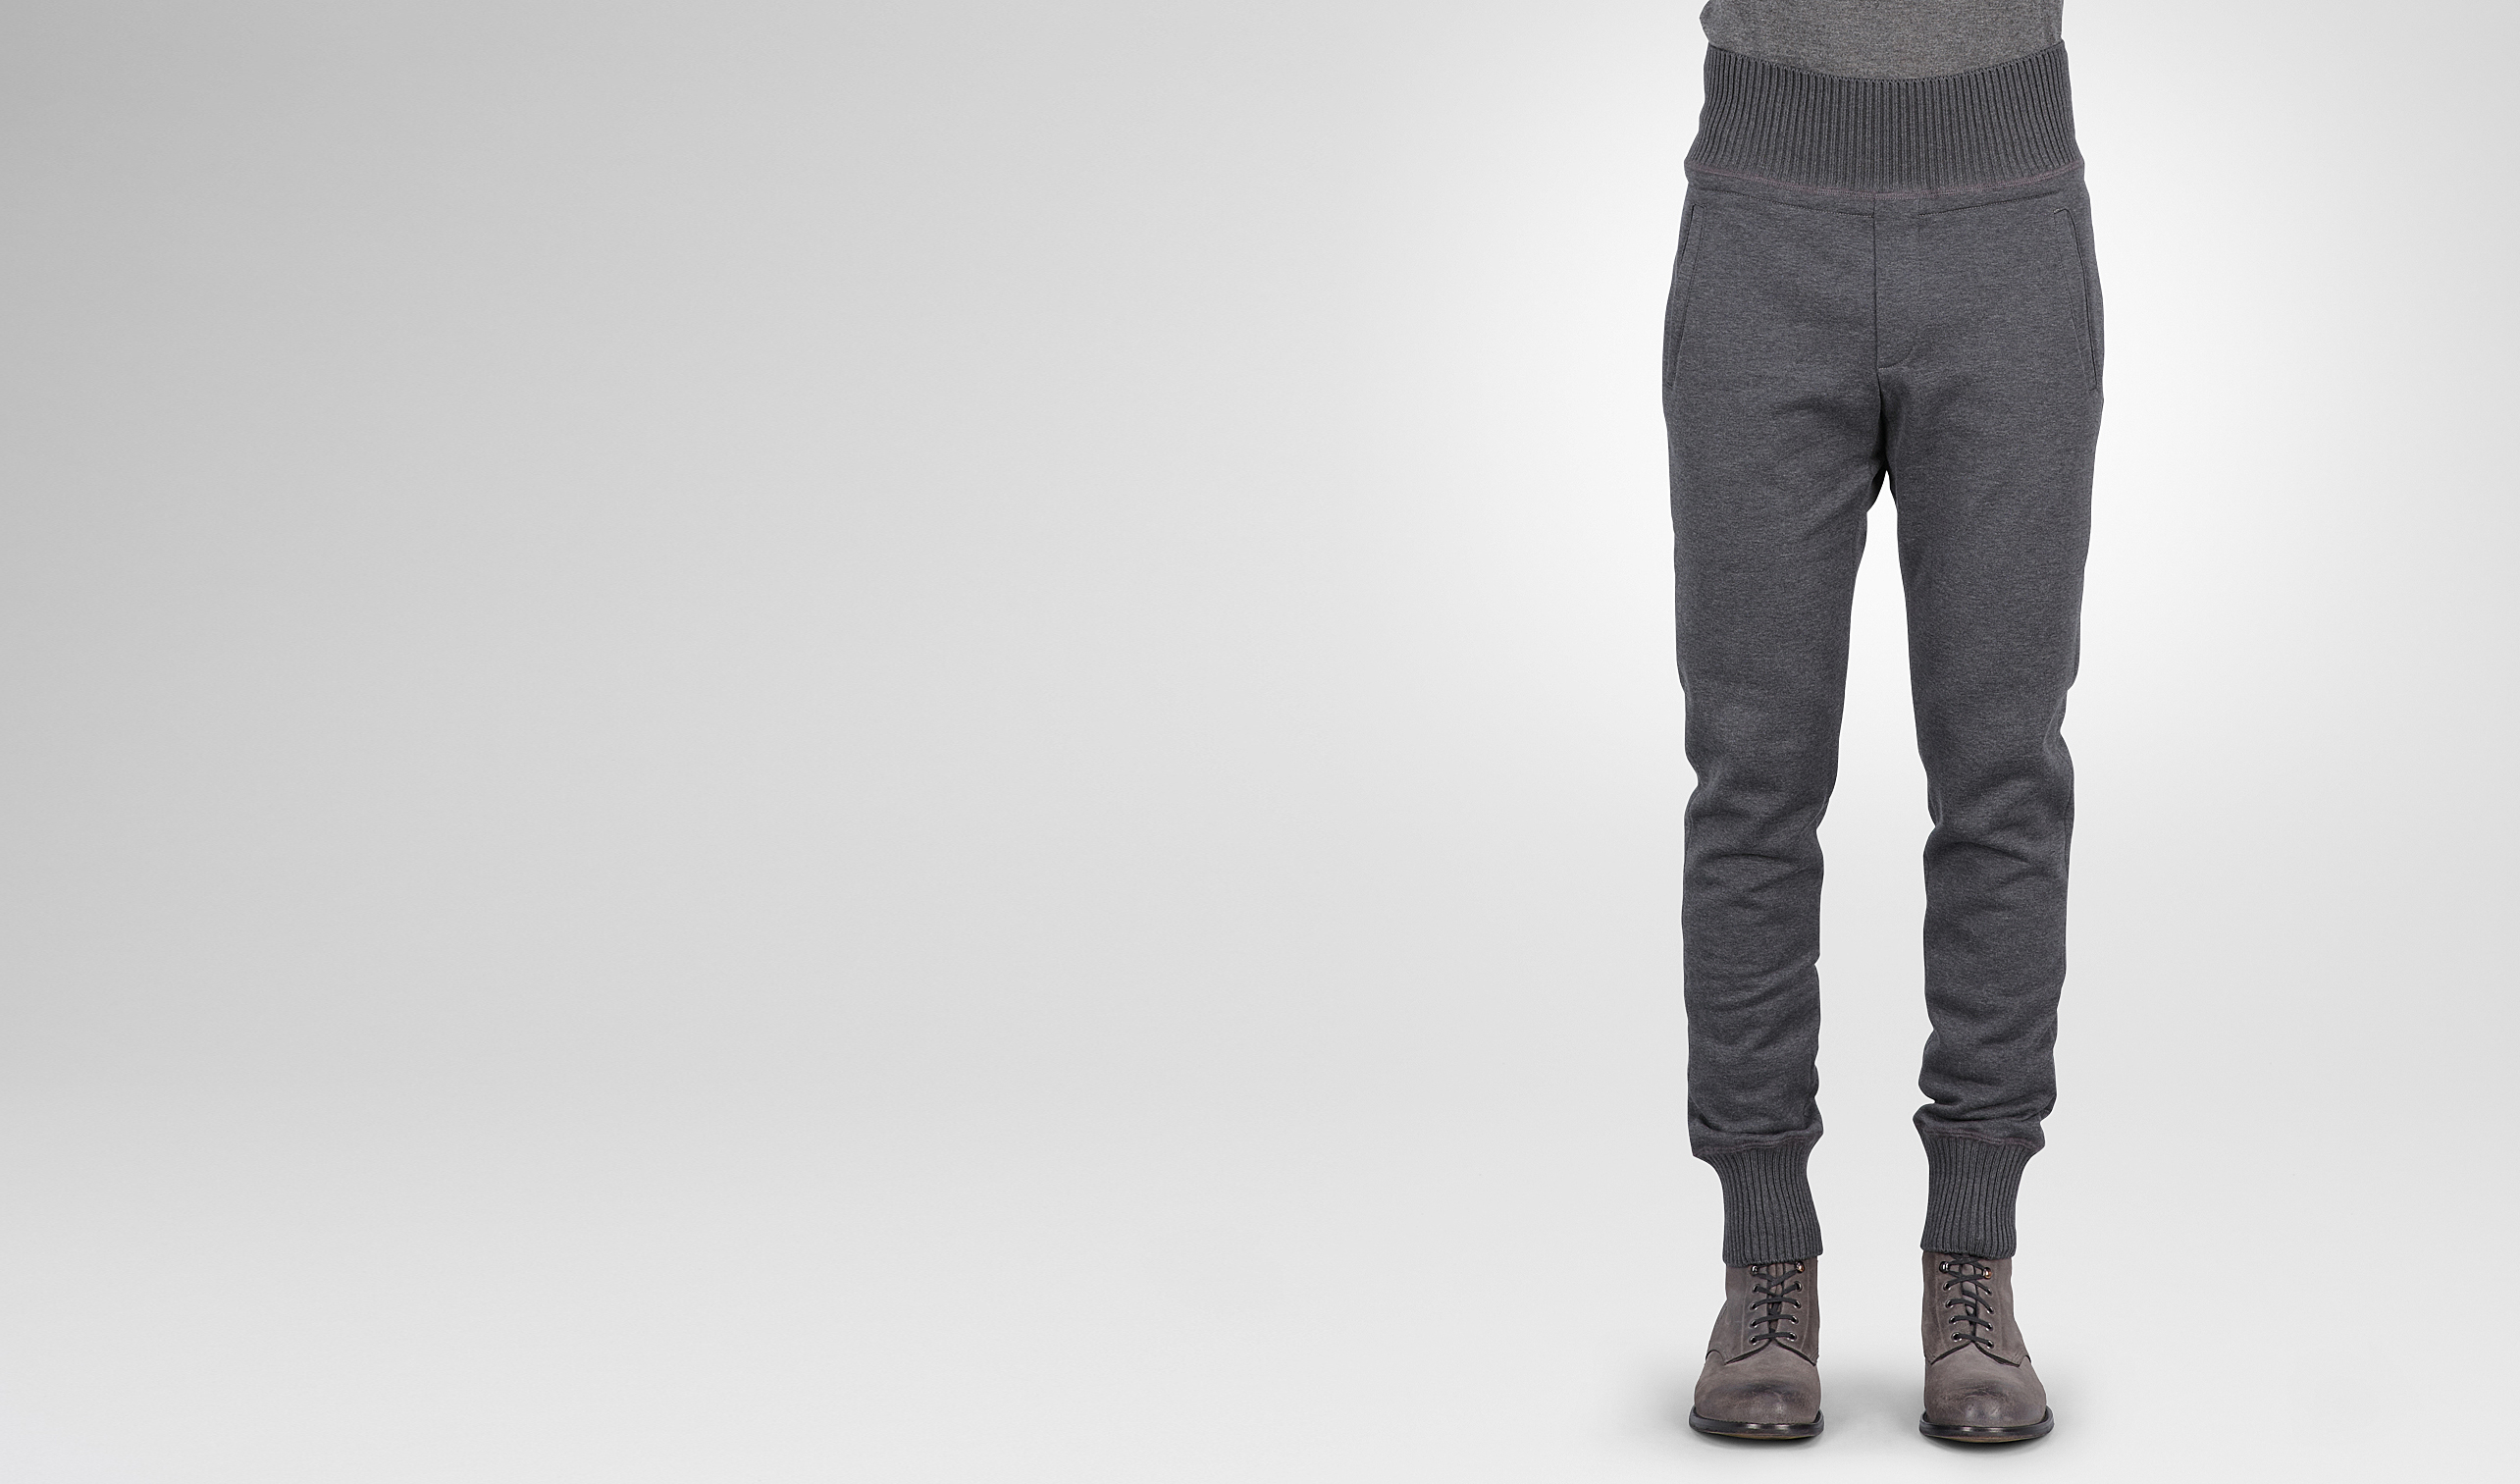 BOTTEGA VENETA Trouser or jeans U New Dark Grey Melange Organic Cotton Wool Jersey Pant pl